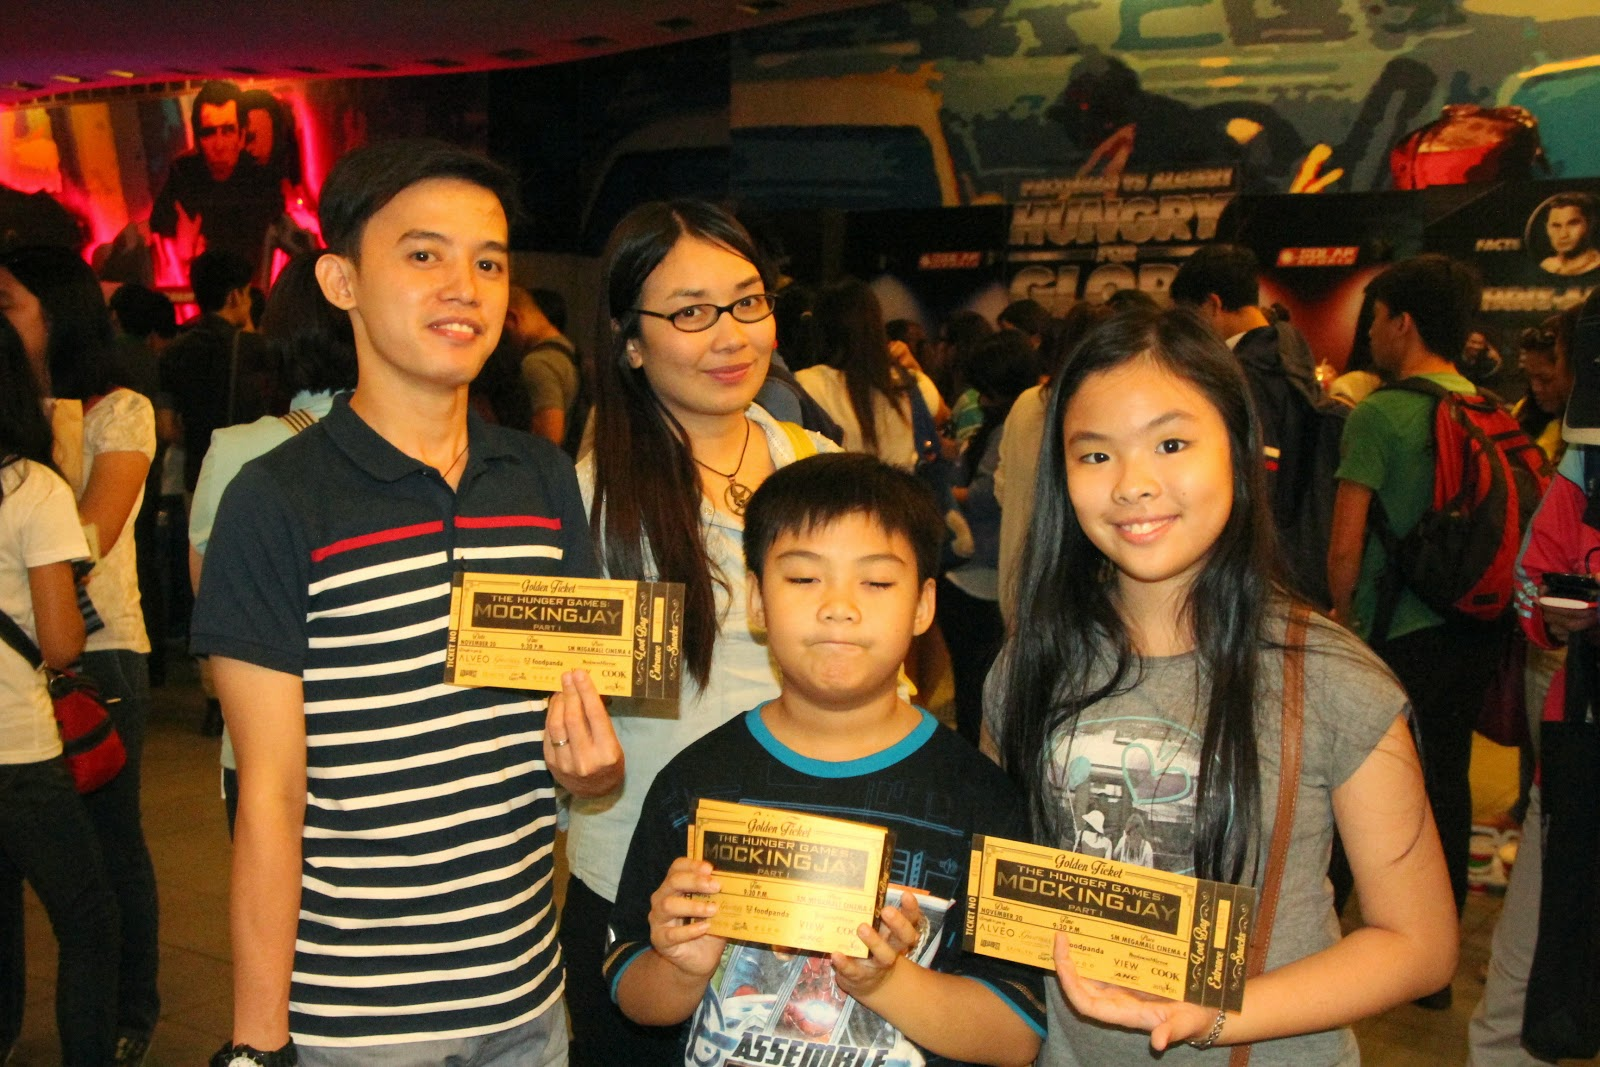 golden ticket mockingjay megamall